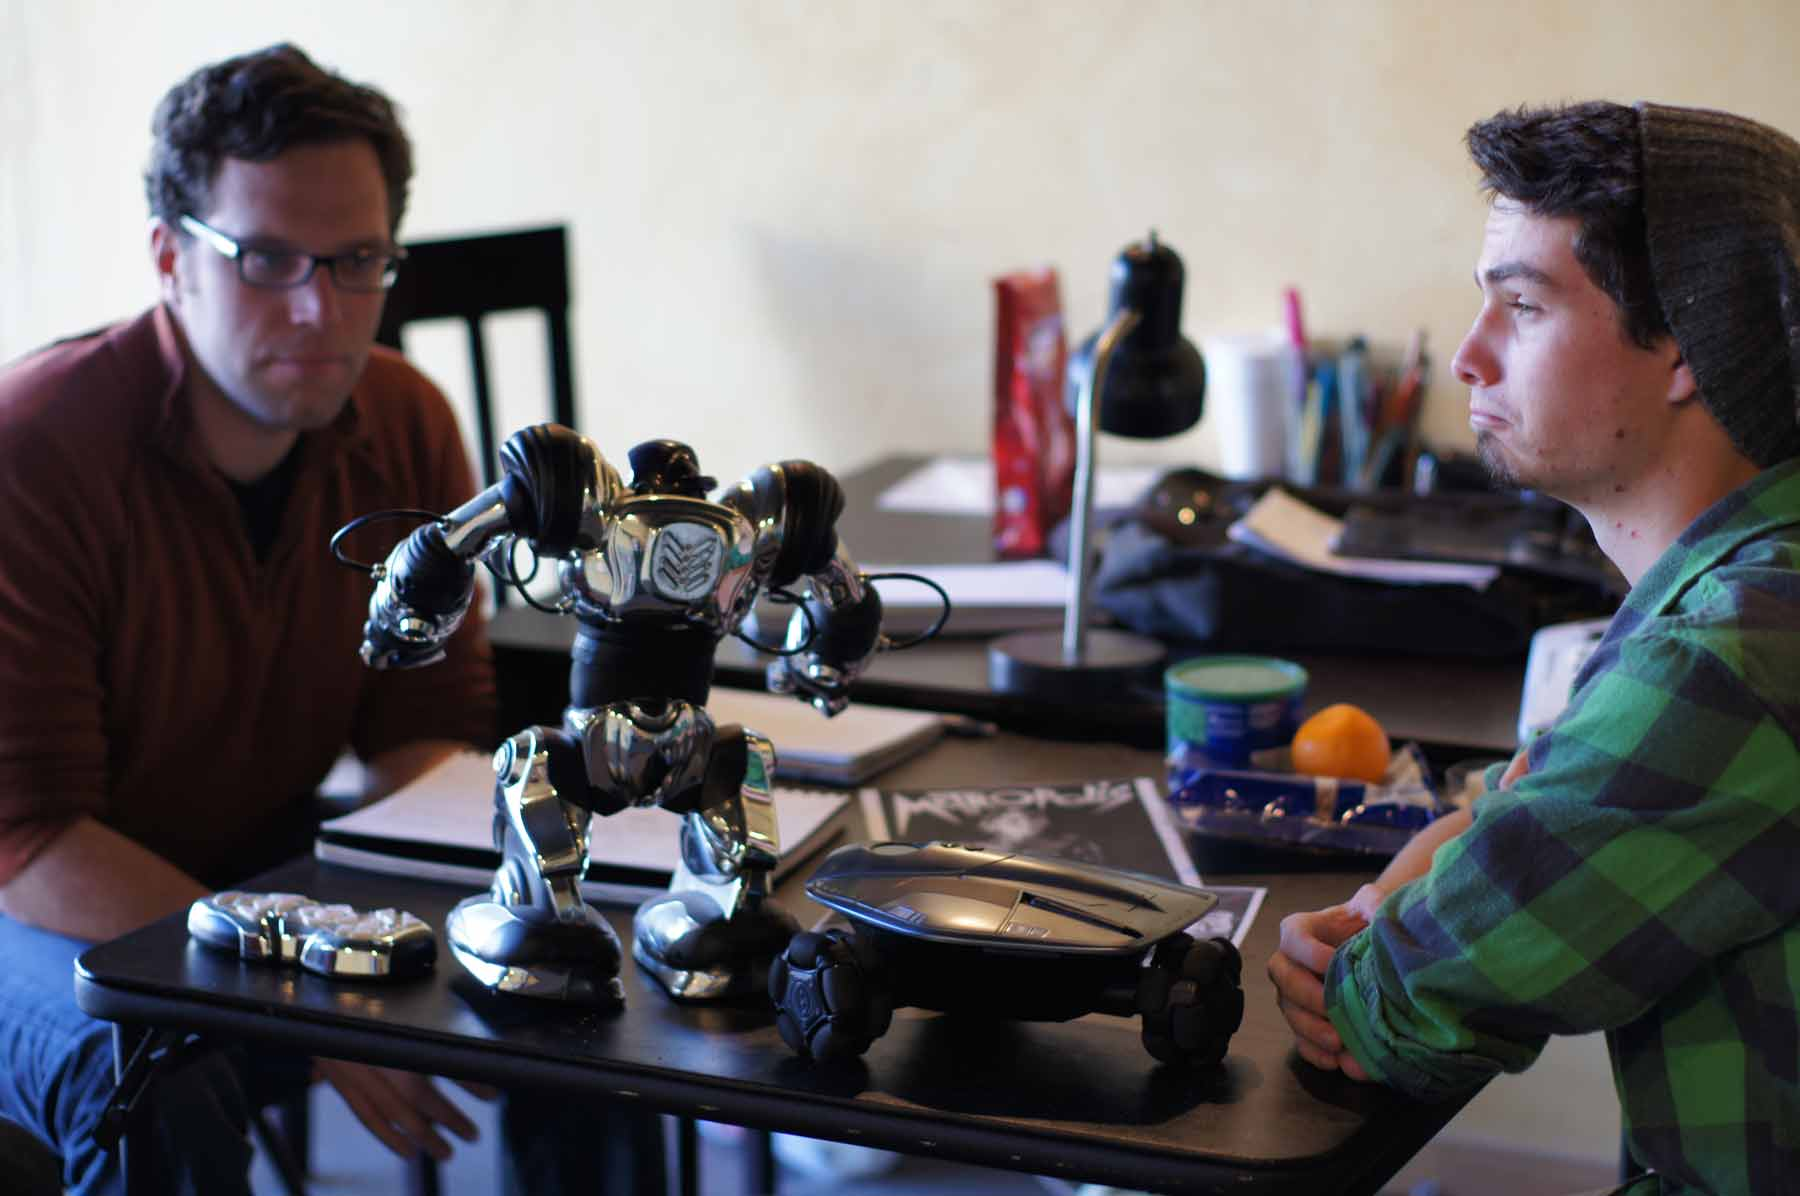 High-schooler (R) Matthew Alexander made his professional acting debut at ion in the 2010 San Diego premiere of  Song of Extinction  by E.M. Lewis. In 2012, he led the design team for the robots in  Heddatron .